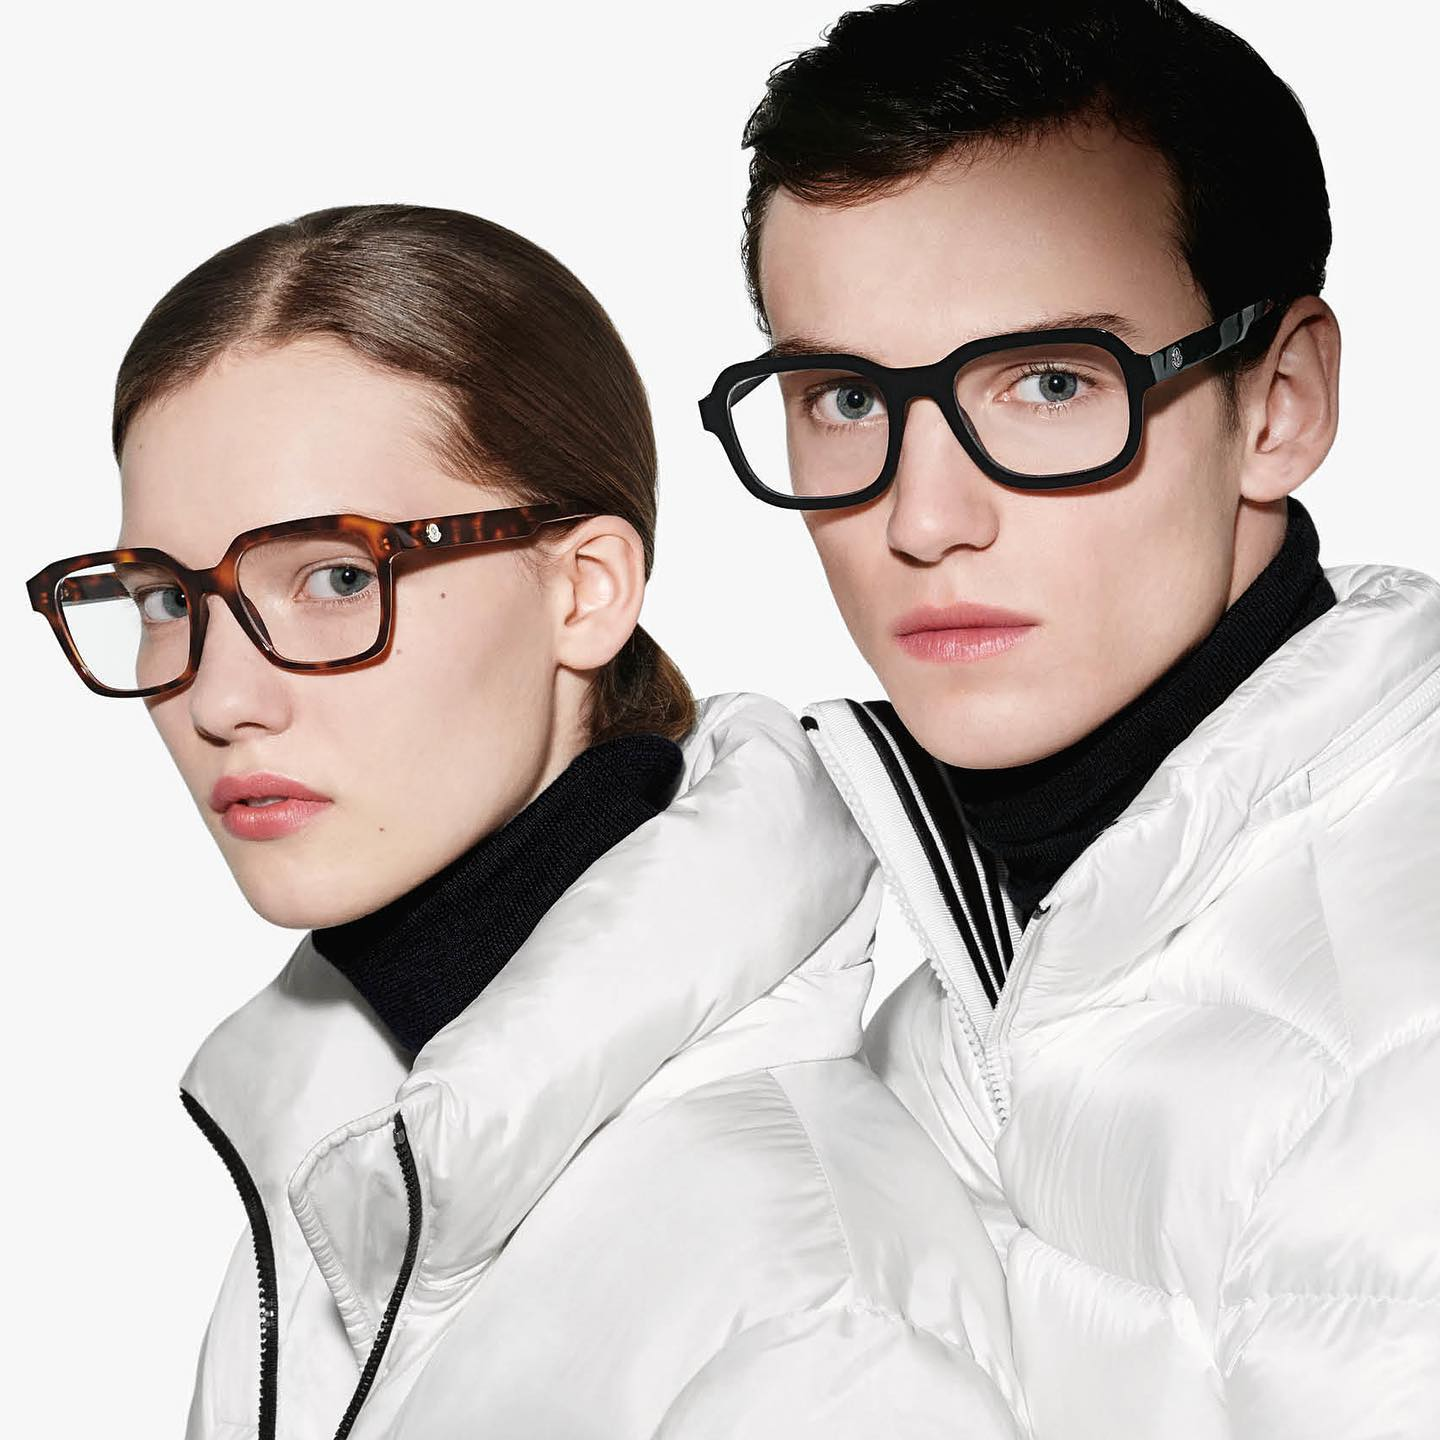 Jakob Z (@jakobzimny) for Moncler Eyewear Autumn/Winter 2020. Photography by Christian MacDonald, styling by Karl Templer, hair by Martine Cullen, makeup by Ariel Yeh and casting by DMCASTING.